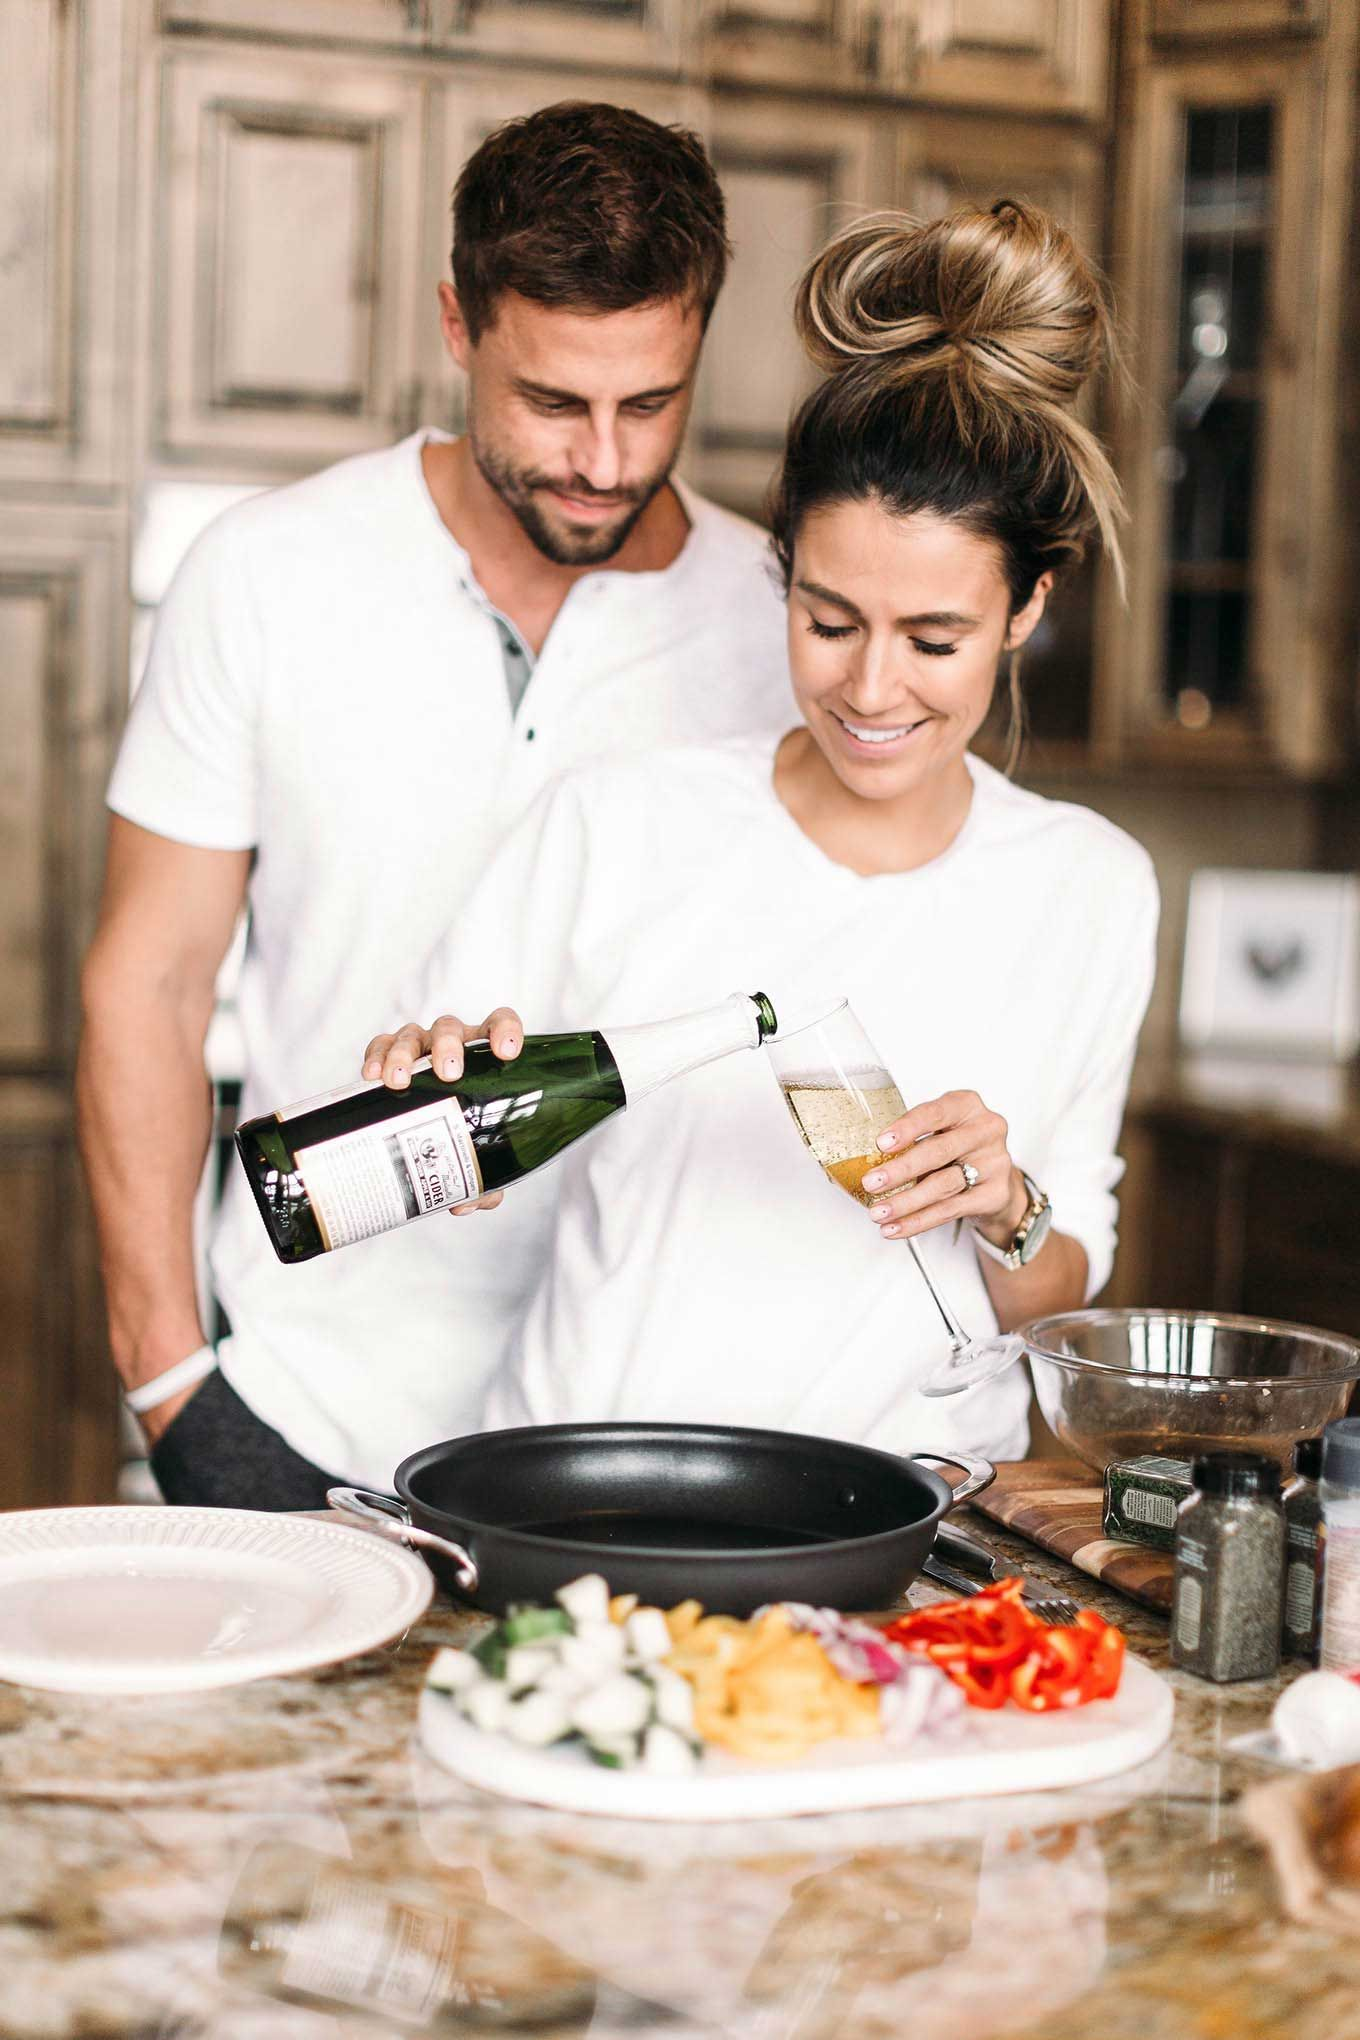 7 Fun Ideas for a Date Night At Home | couples | Pinterest | Couples ...